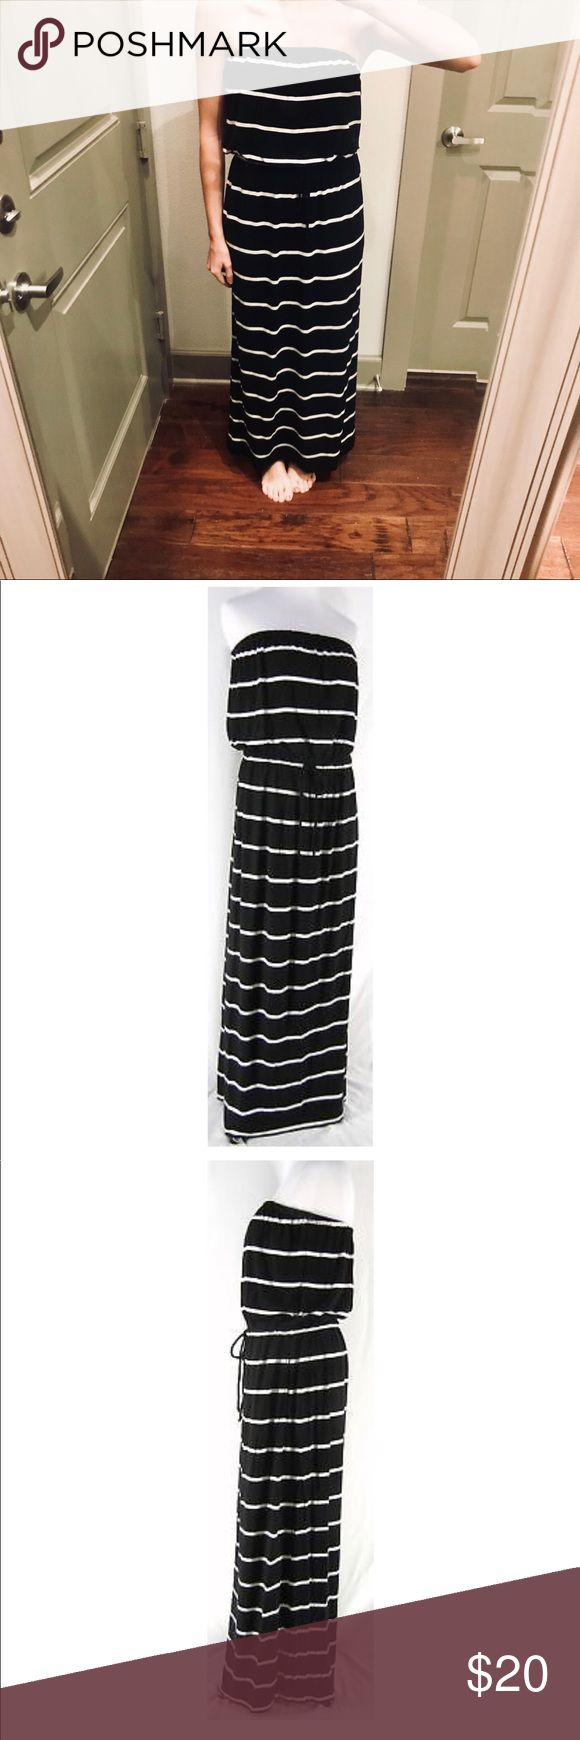 Black and white striped maxi dress from J. Crew Casual maxi dress with drawstring waist and elastic at the top. Includes pockets and at 5'5, this hits me at a perfect length to wear with sandals J. Crew Dresses Maxi